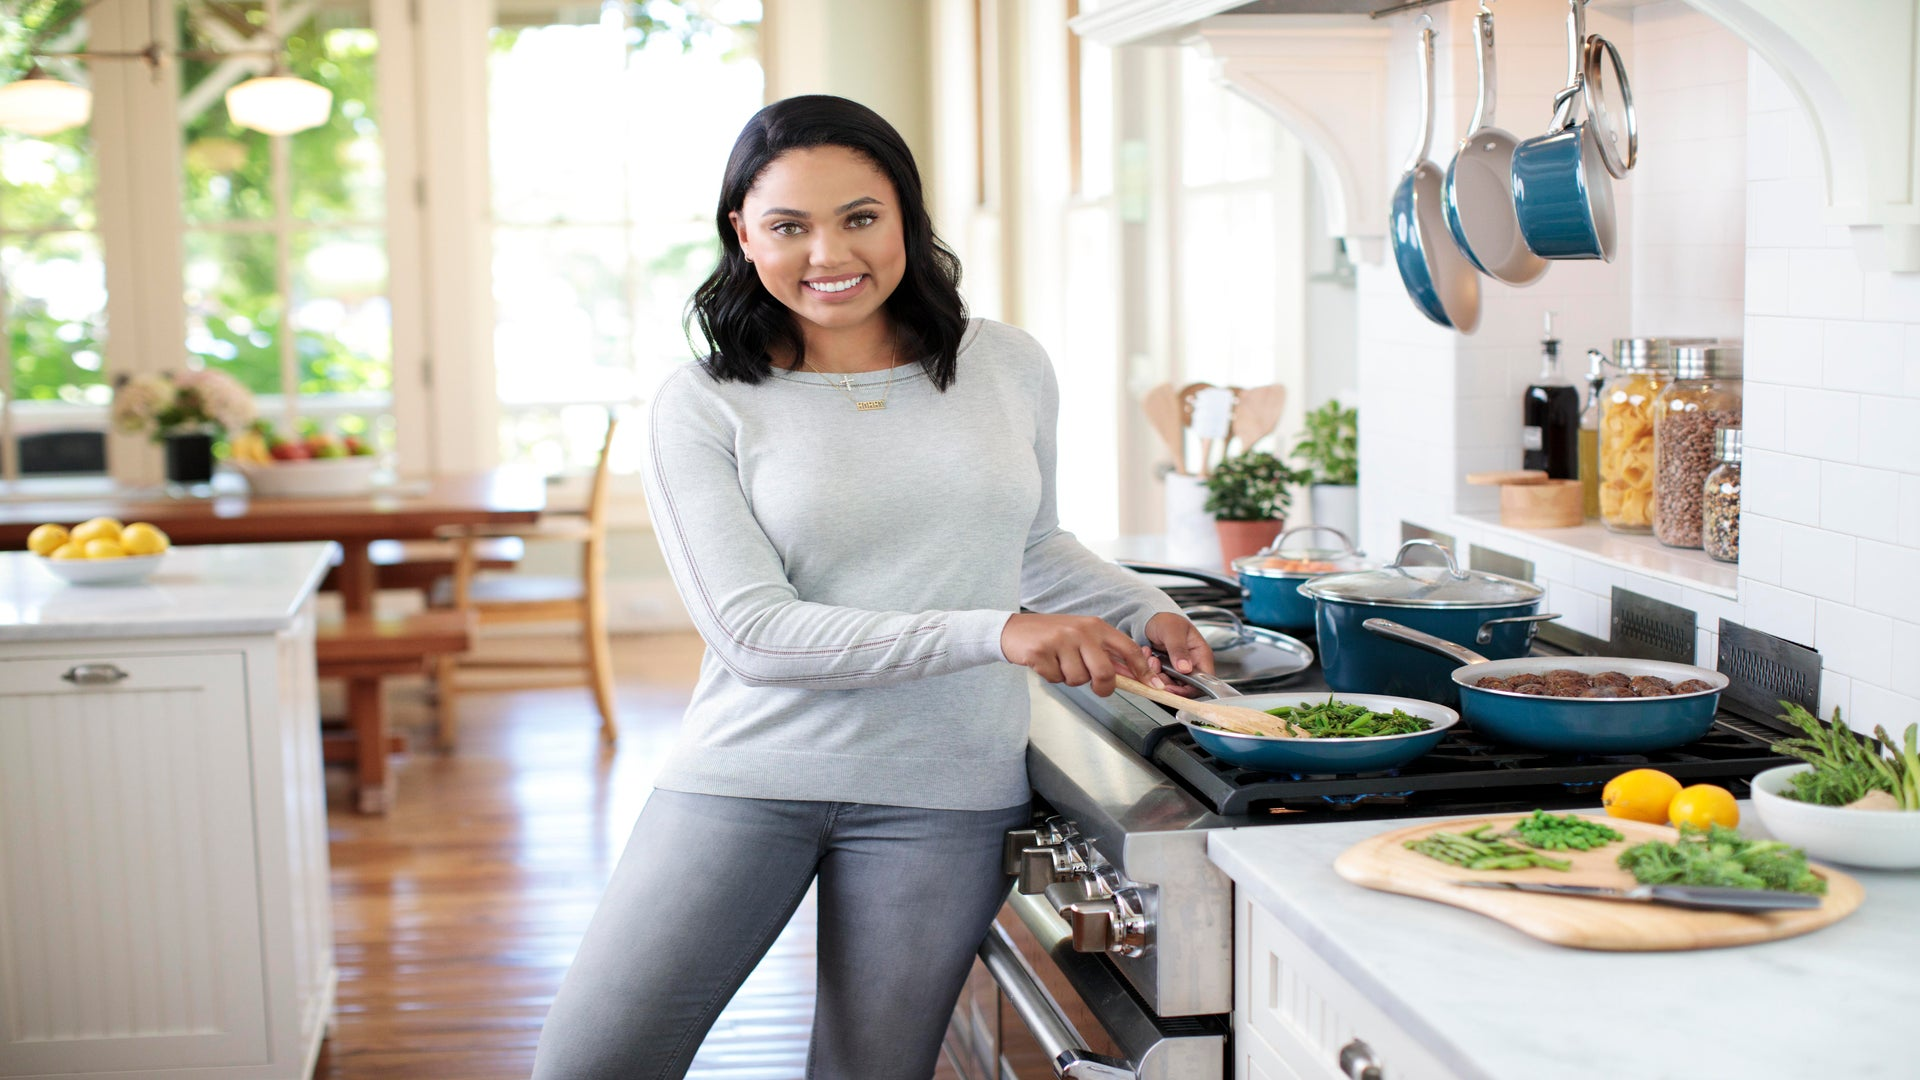 Ayesha Curry's Debut Cookware Line Has Arrived—Here's What We're Buying From It